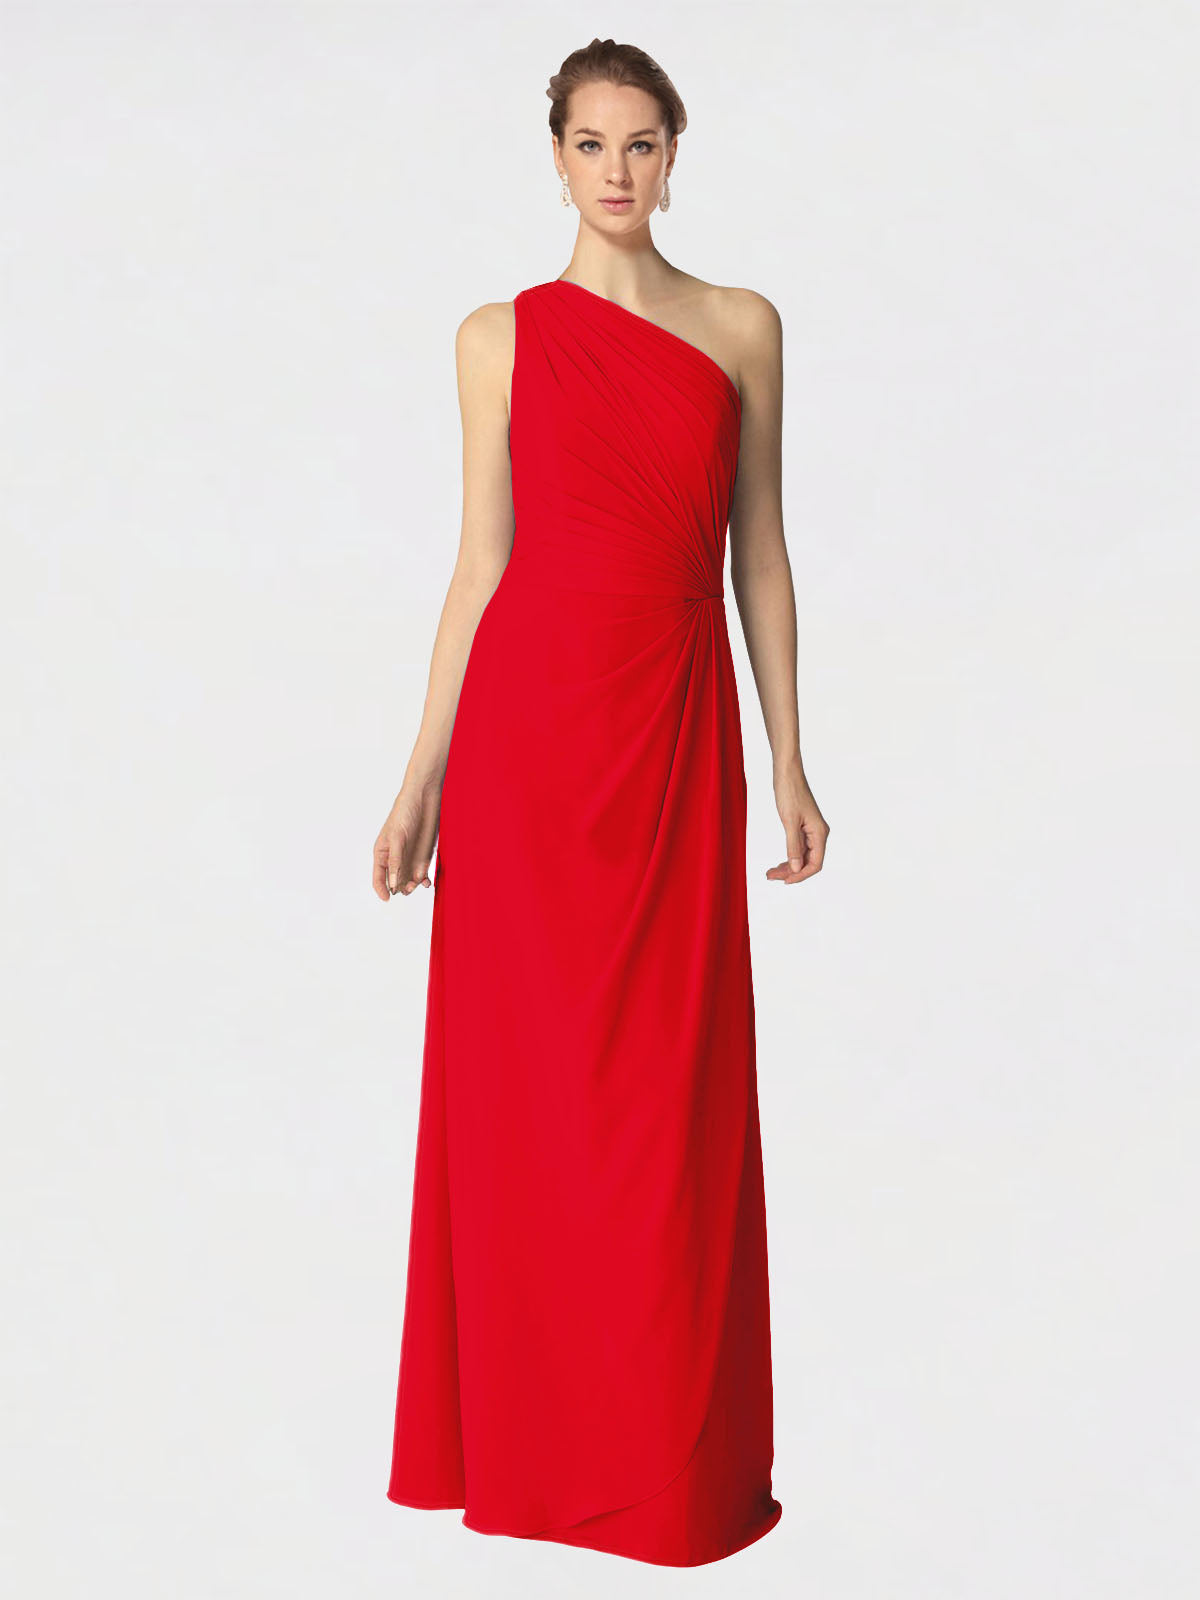 Long A-Line One Shoulder Sleeveless Red Chiffon Bridesmaid Dress Aurora